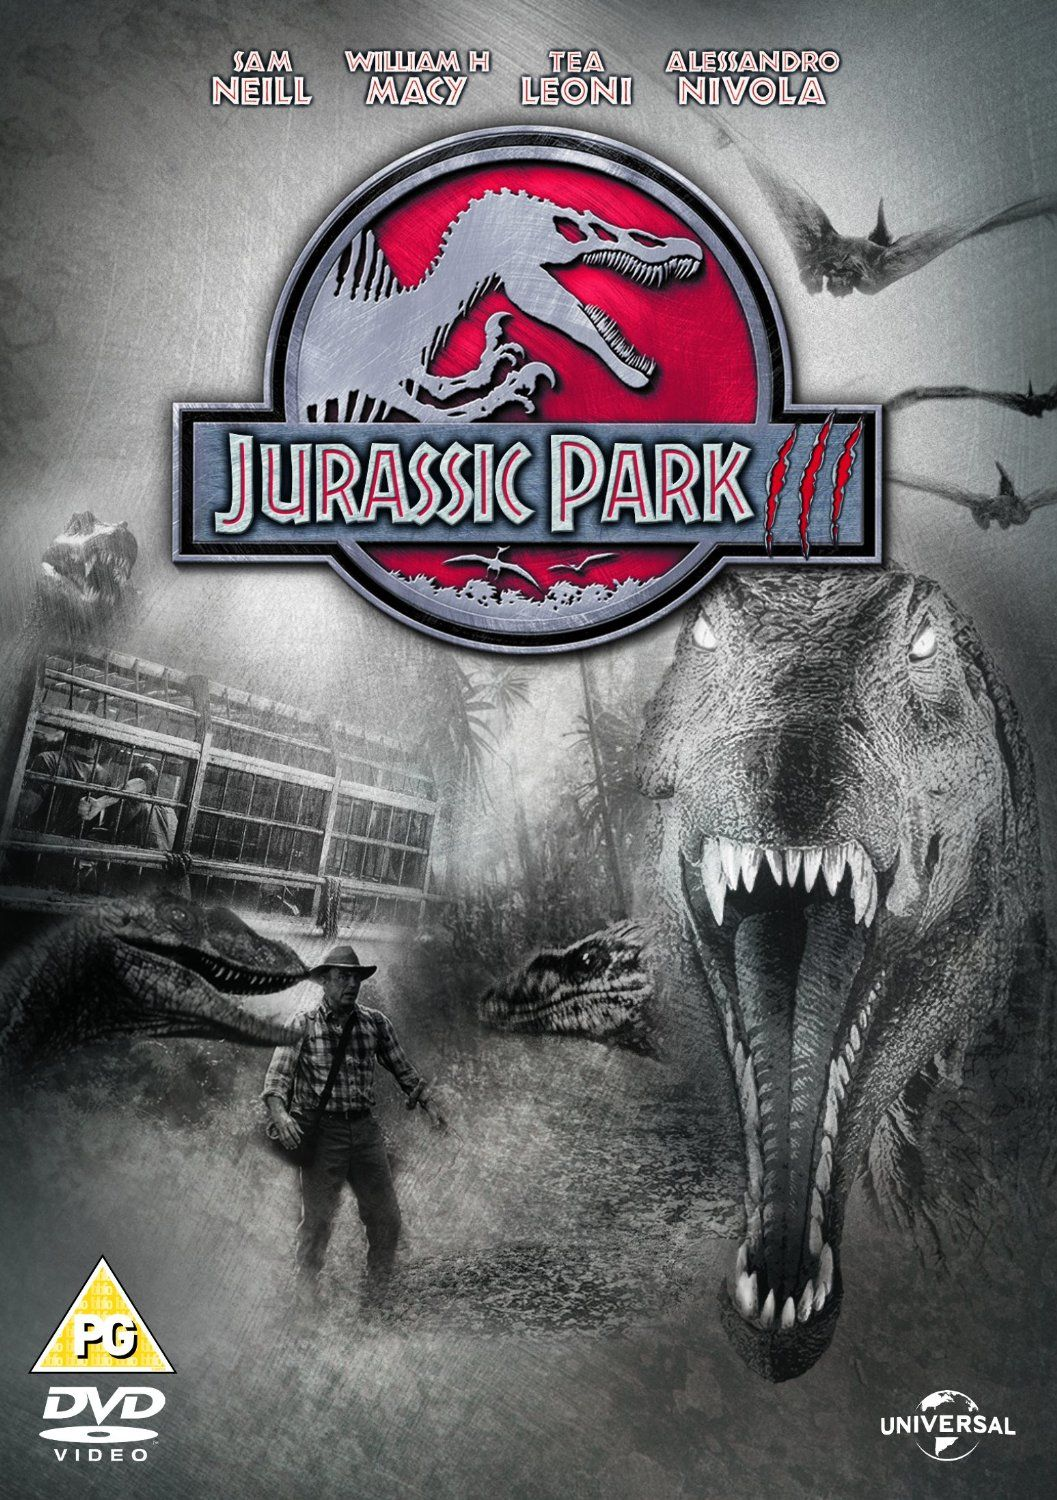 Jurassic Park III (2001) based on the book by Michael